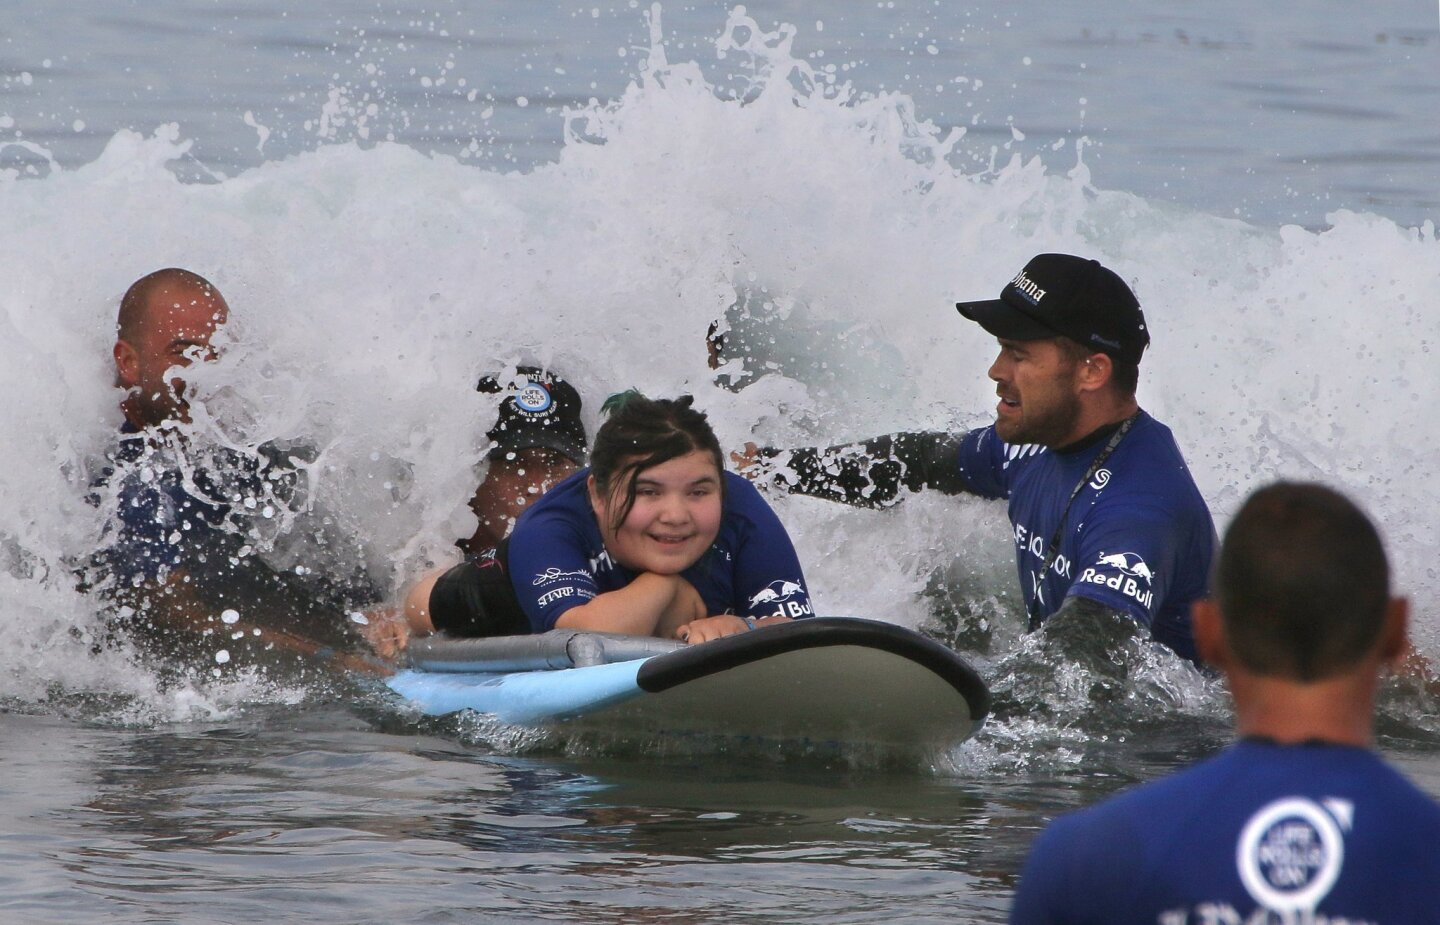 Mercy Hill-Mariscal, 12, of Huntington Beach, surfs with the assistance of volunteers. She injured her spine in a car accident when she was 2.